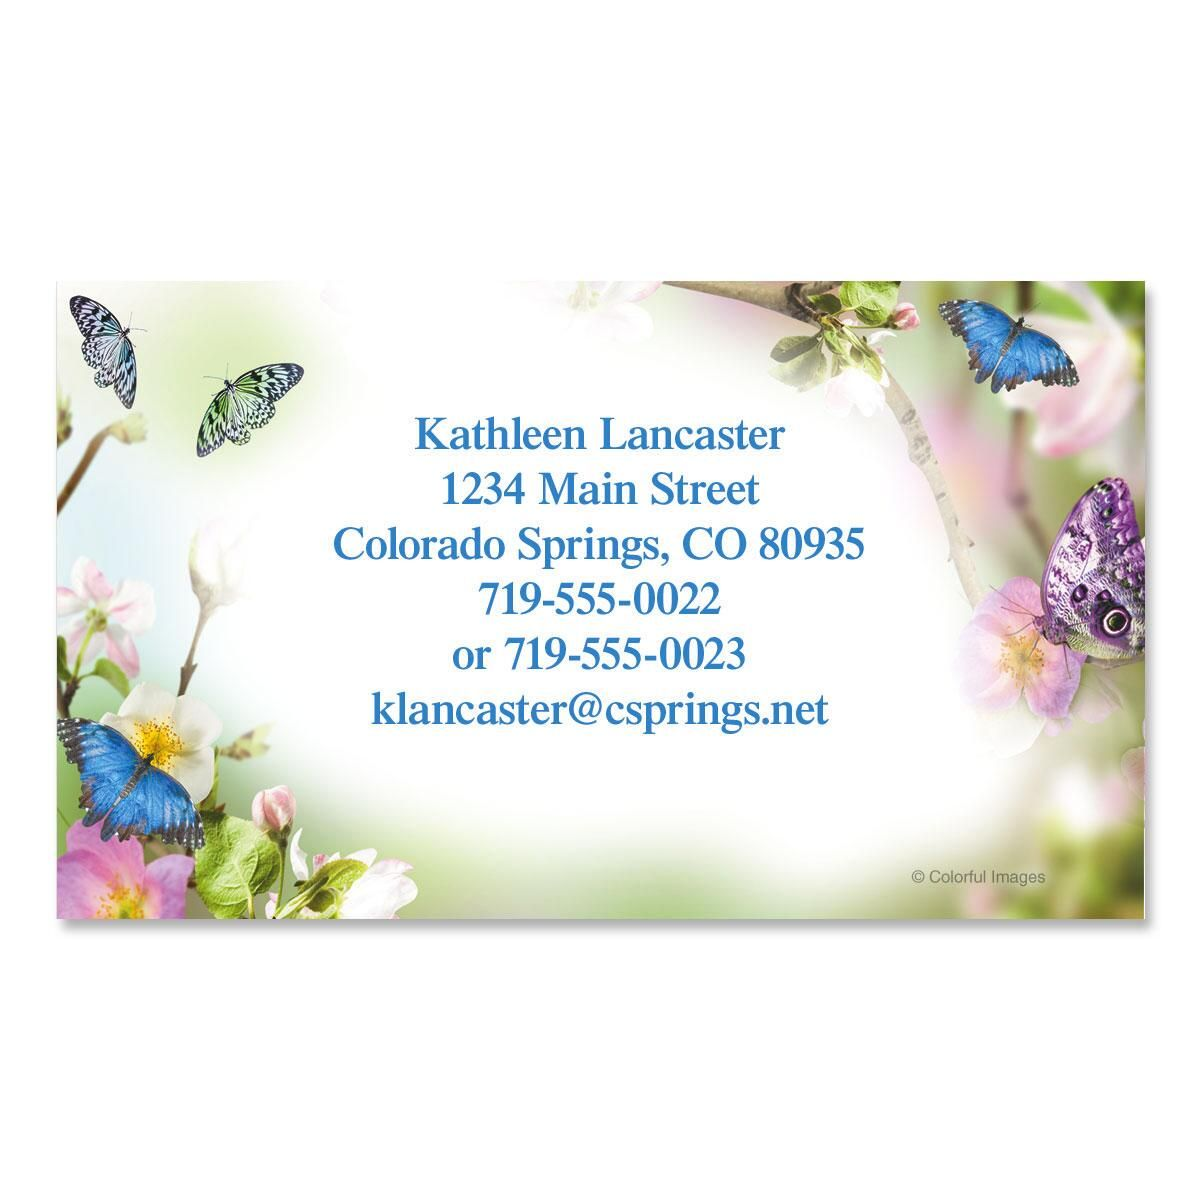 Butterfly Delight Business Cards | Colorful Images